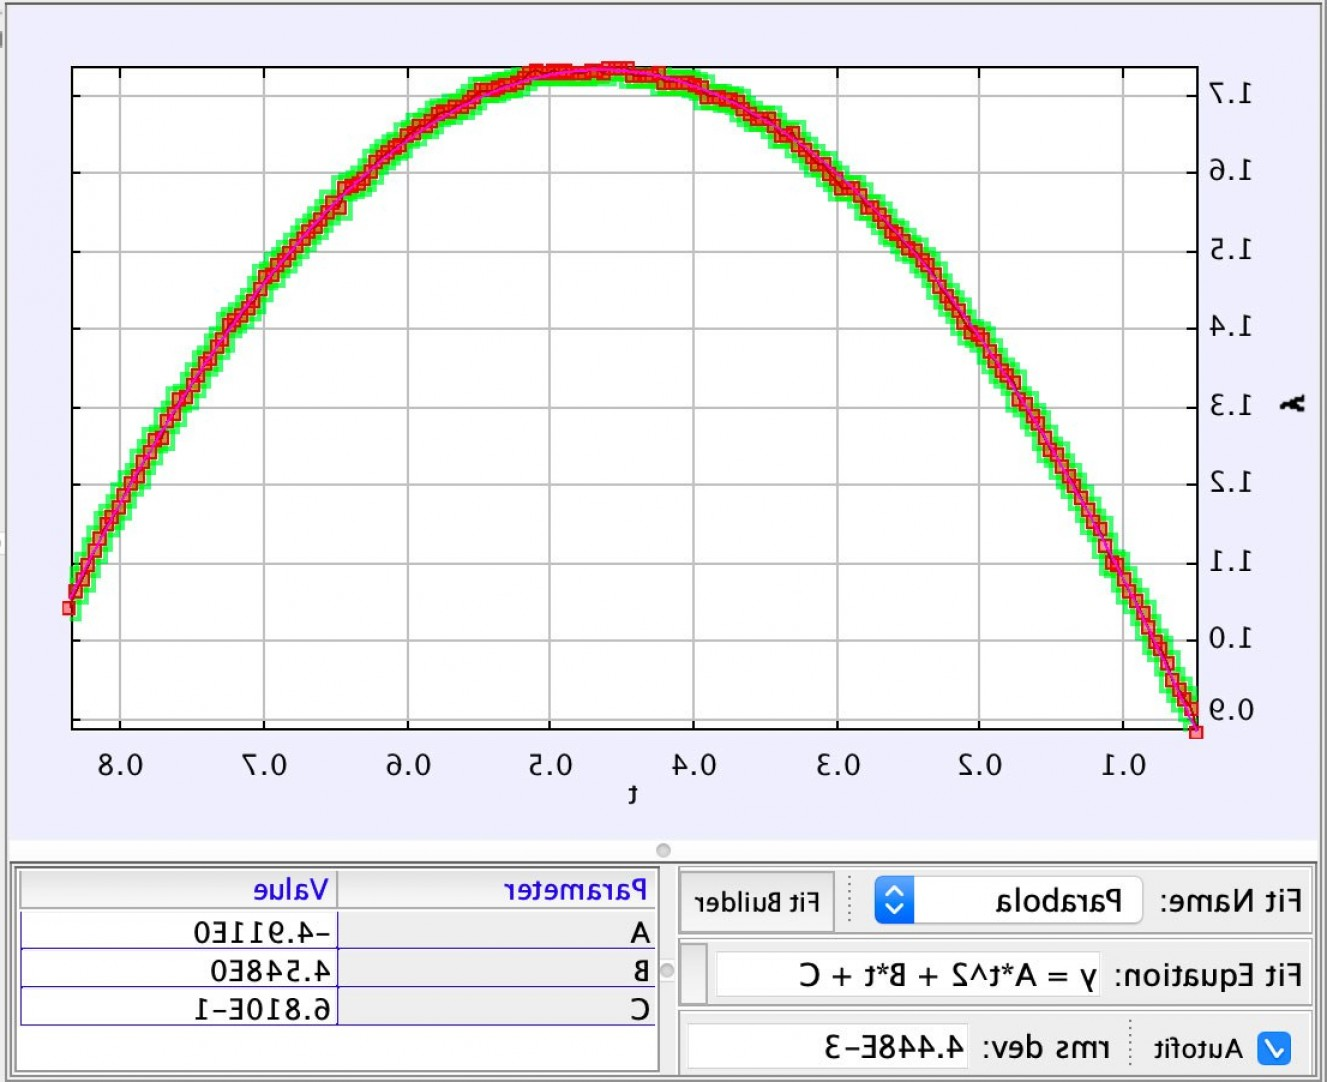 Gravitational Force Vectors: Calculate Thrust Force On A Drone